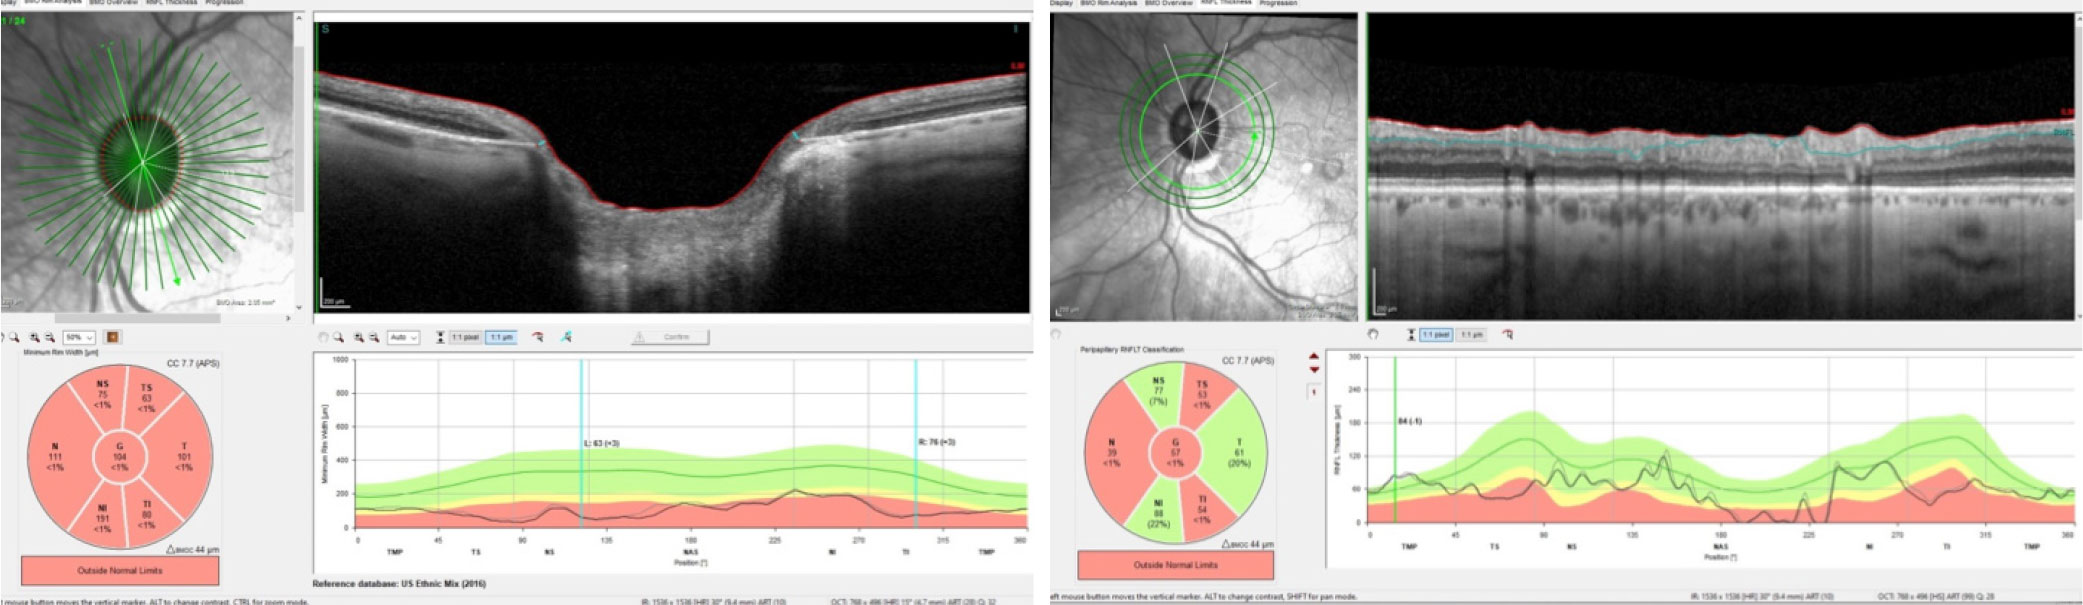 Bruch's membrane opening (left) and retinal nerve fiber layer (right) follow-up scans demonstrate significant neuroretinal rim and retinal nerve fiber layer damage, but with no progression from baseline.